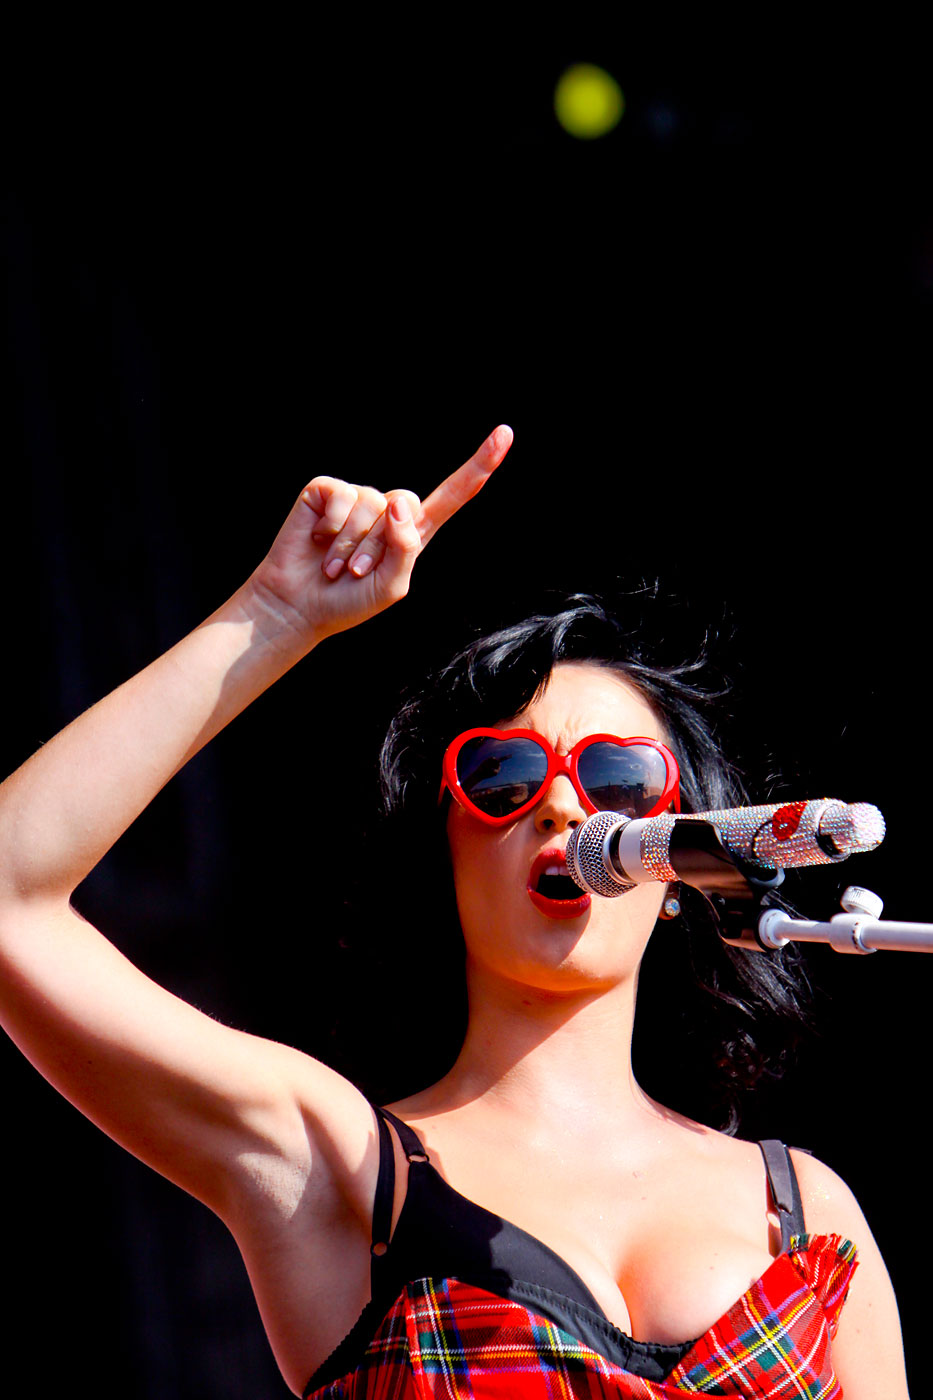 """Katy Perry performs a live concert at the """"T in the Park"""" music festival in Kinross, Scotland on July 12, 2009."""